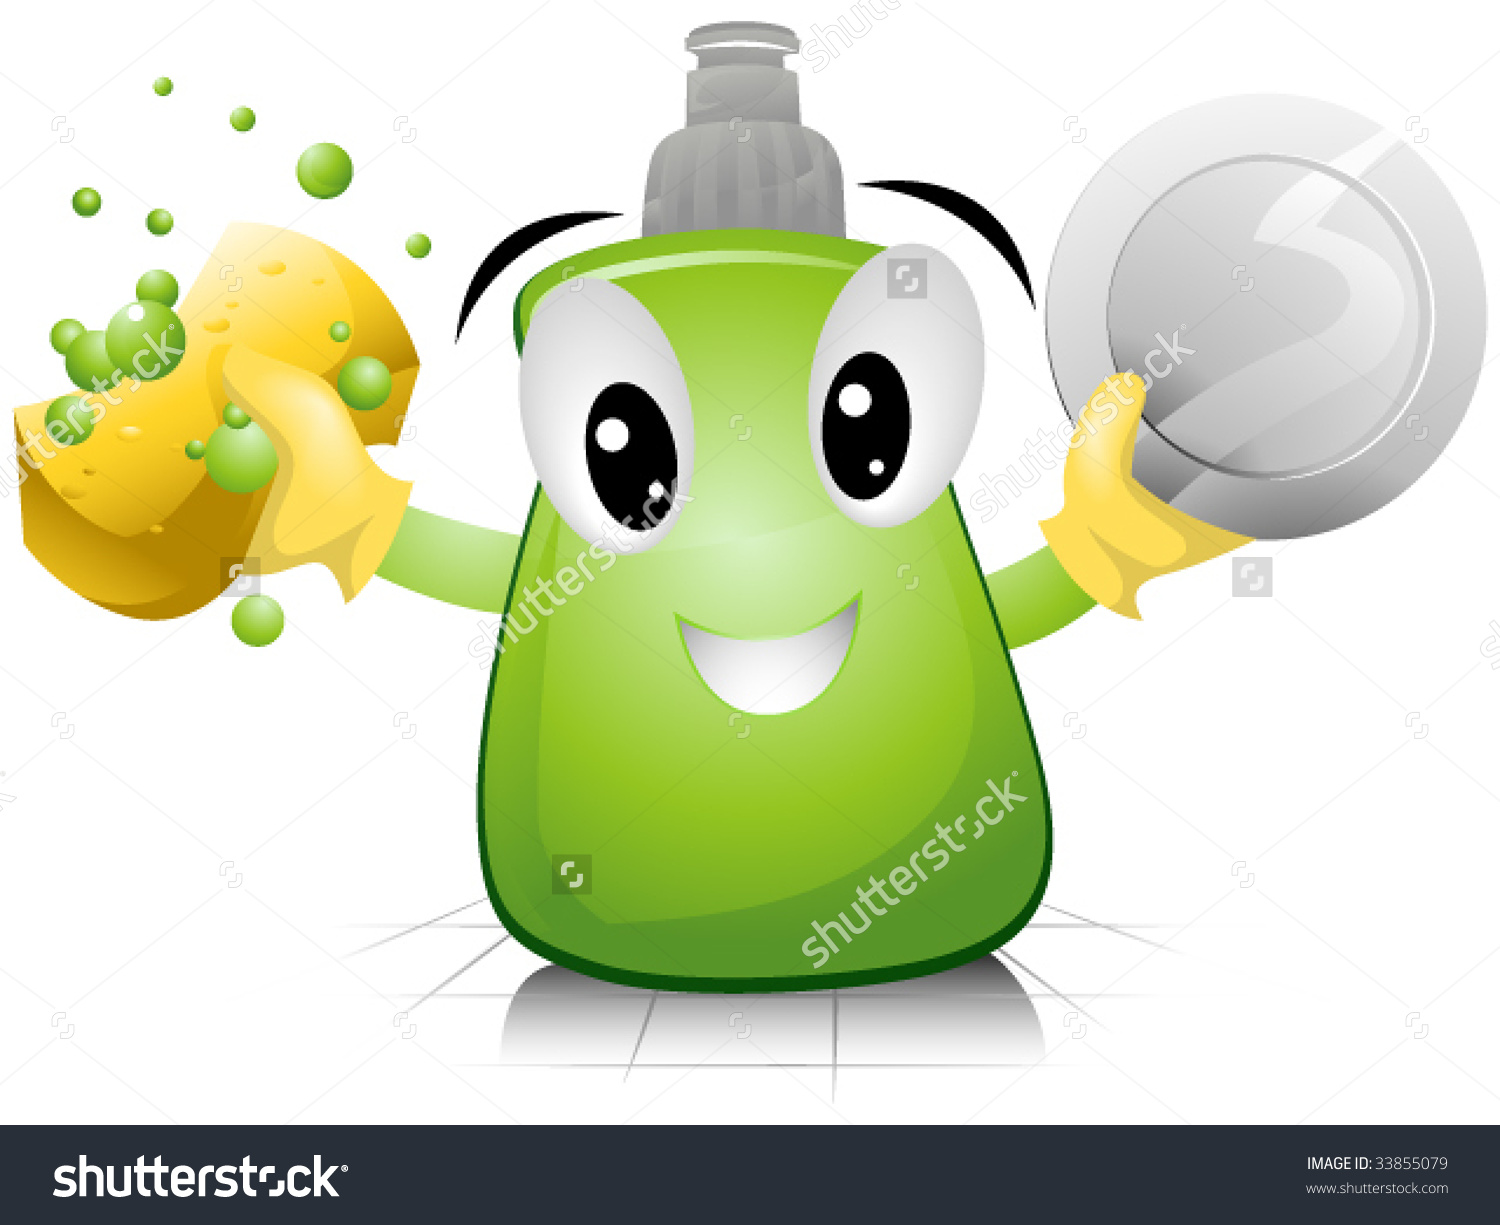 Dishwashing Liquid Vector Stock Vector 33855079.